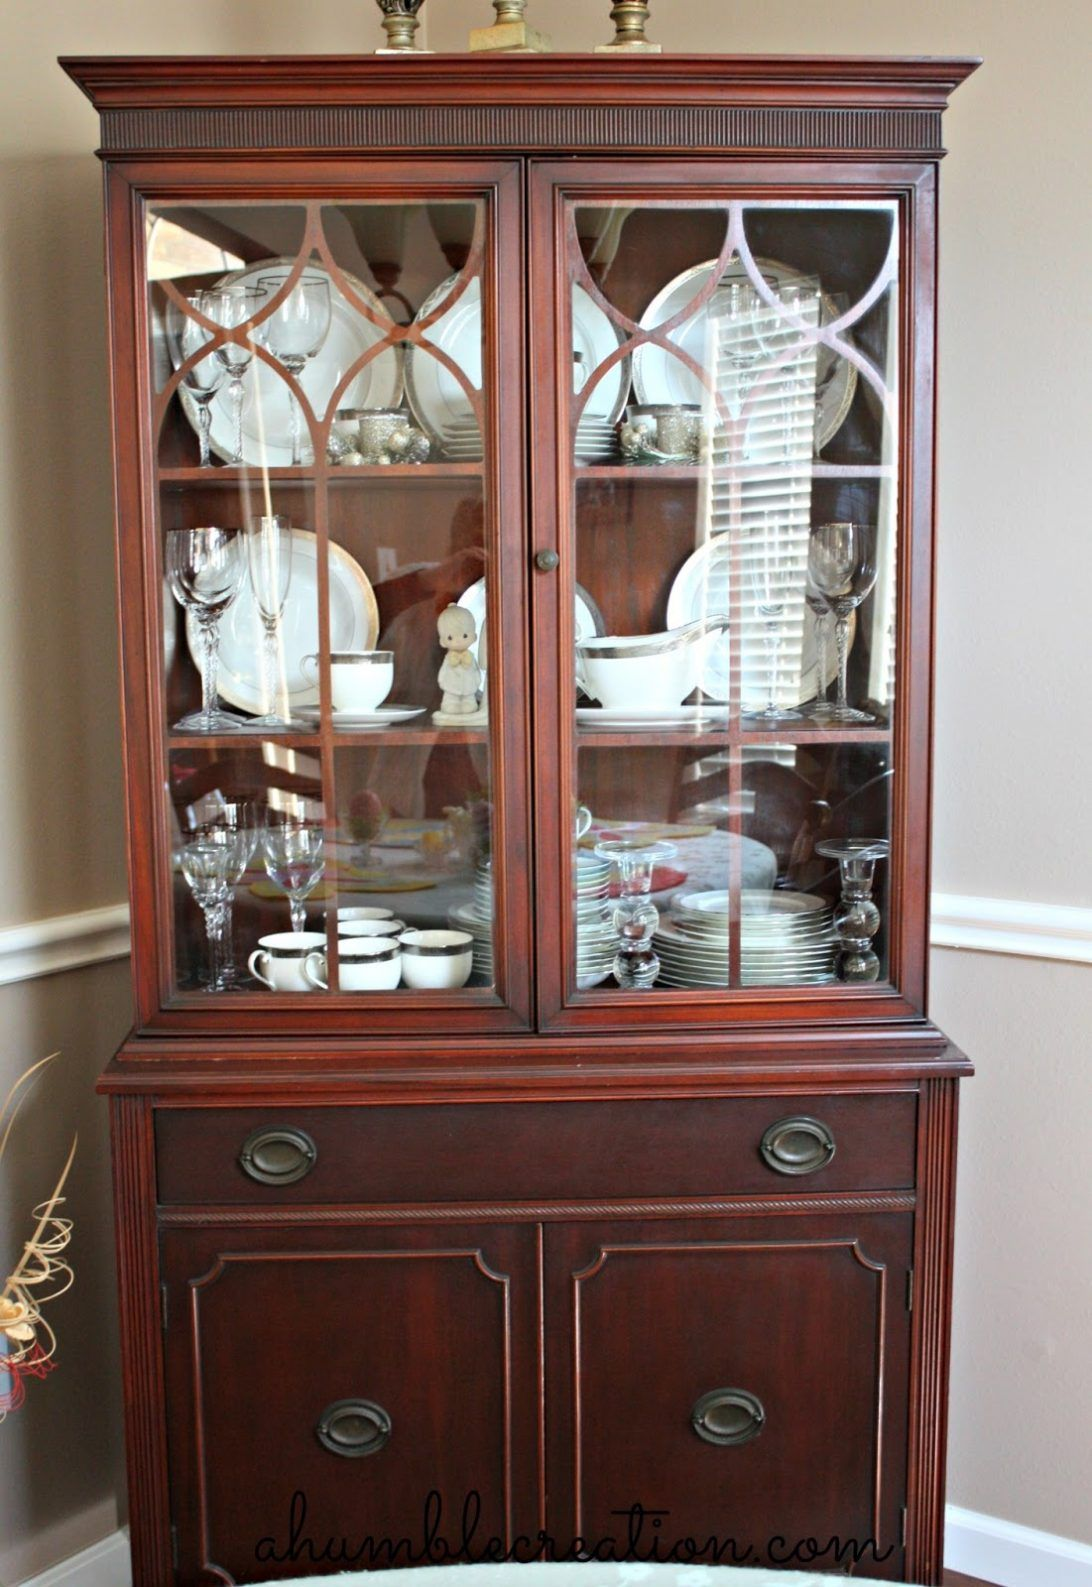 China Cabinet Display Case Or Black And White China Cabinet And Extra Large China  Cabinet Also - China Cabinet Display Case Or Black And White China Cabinet And